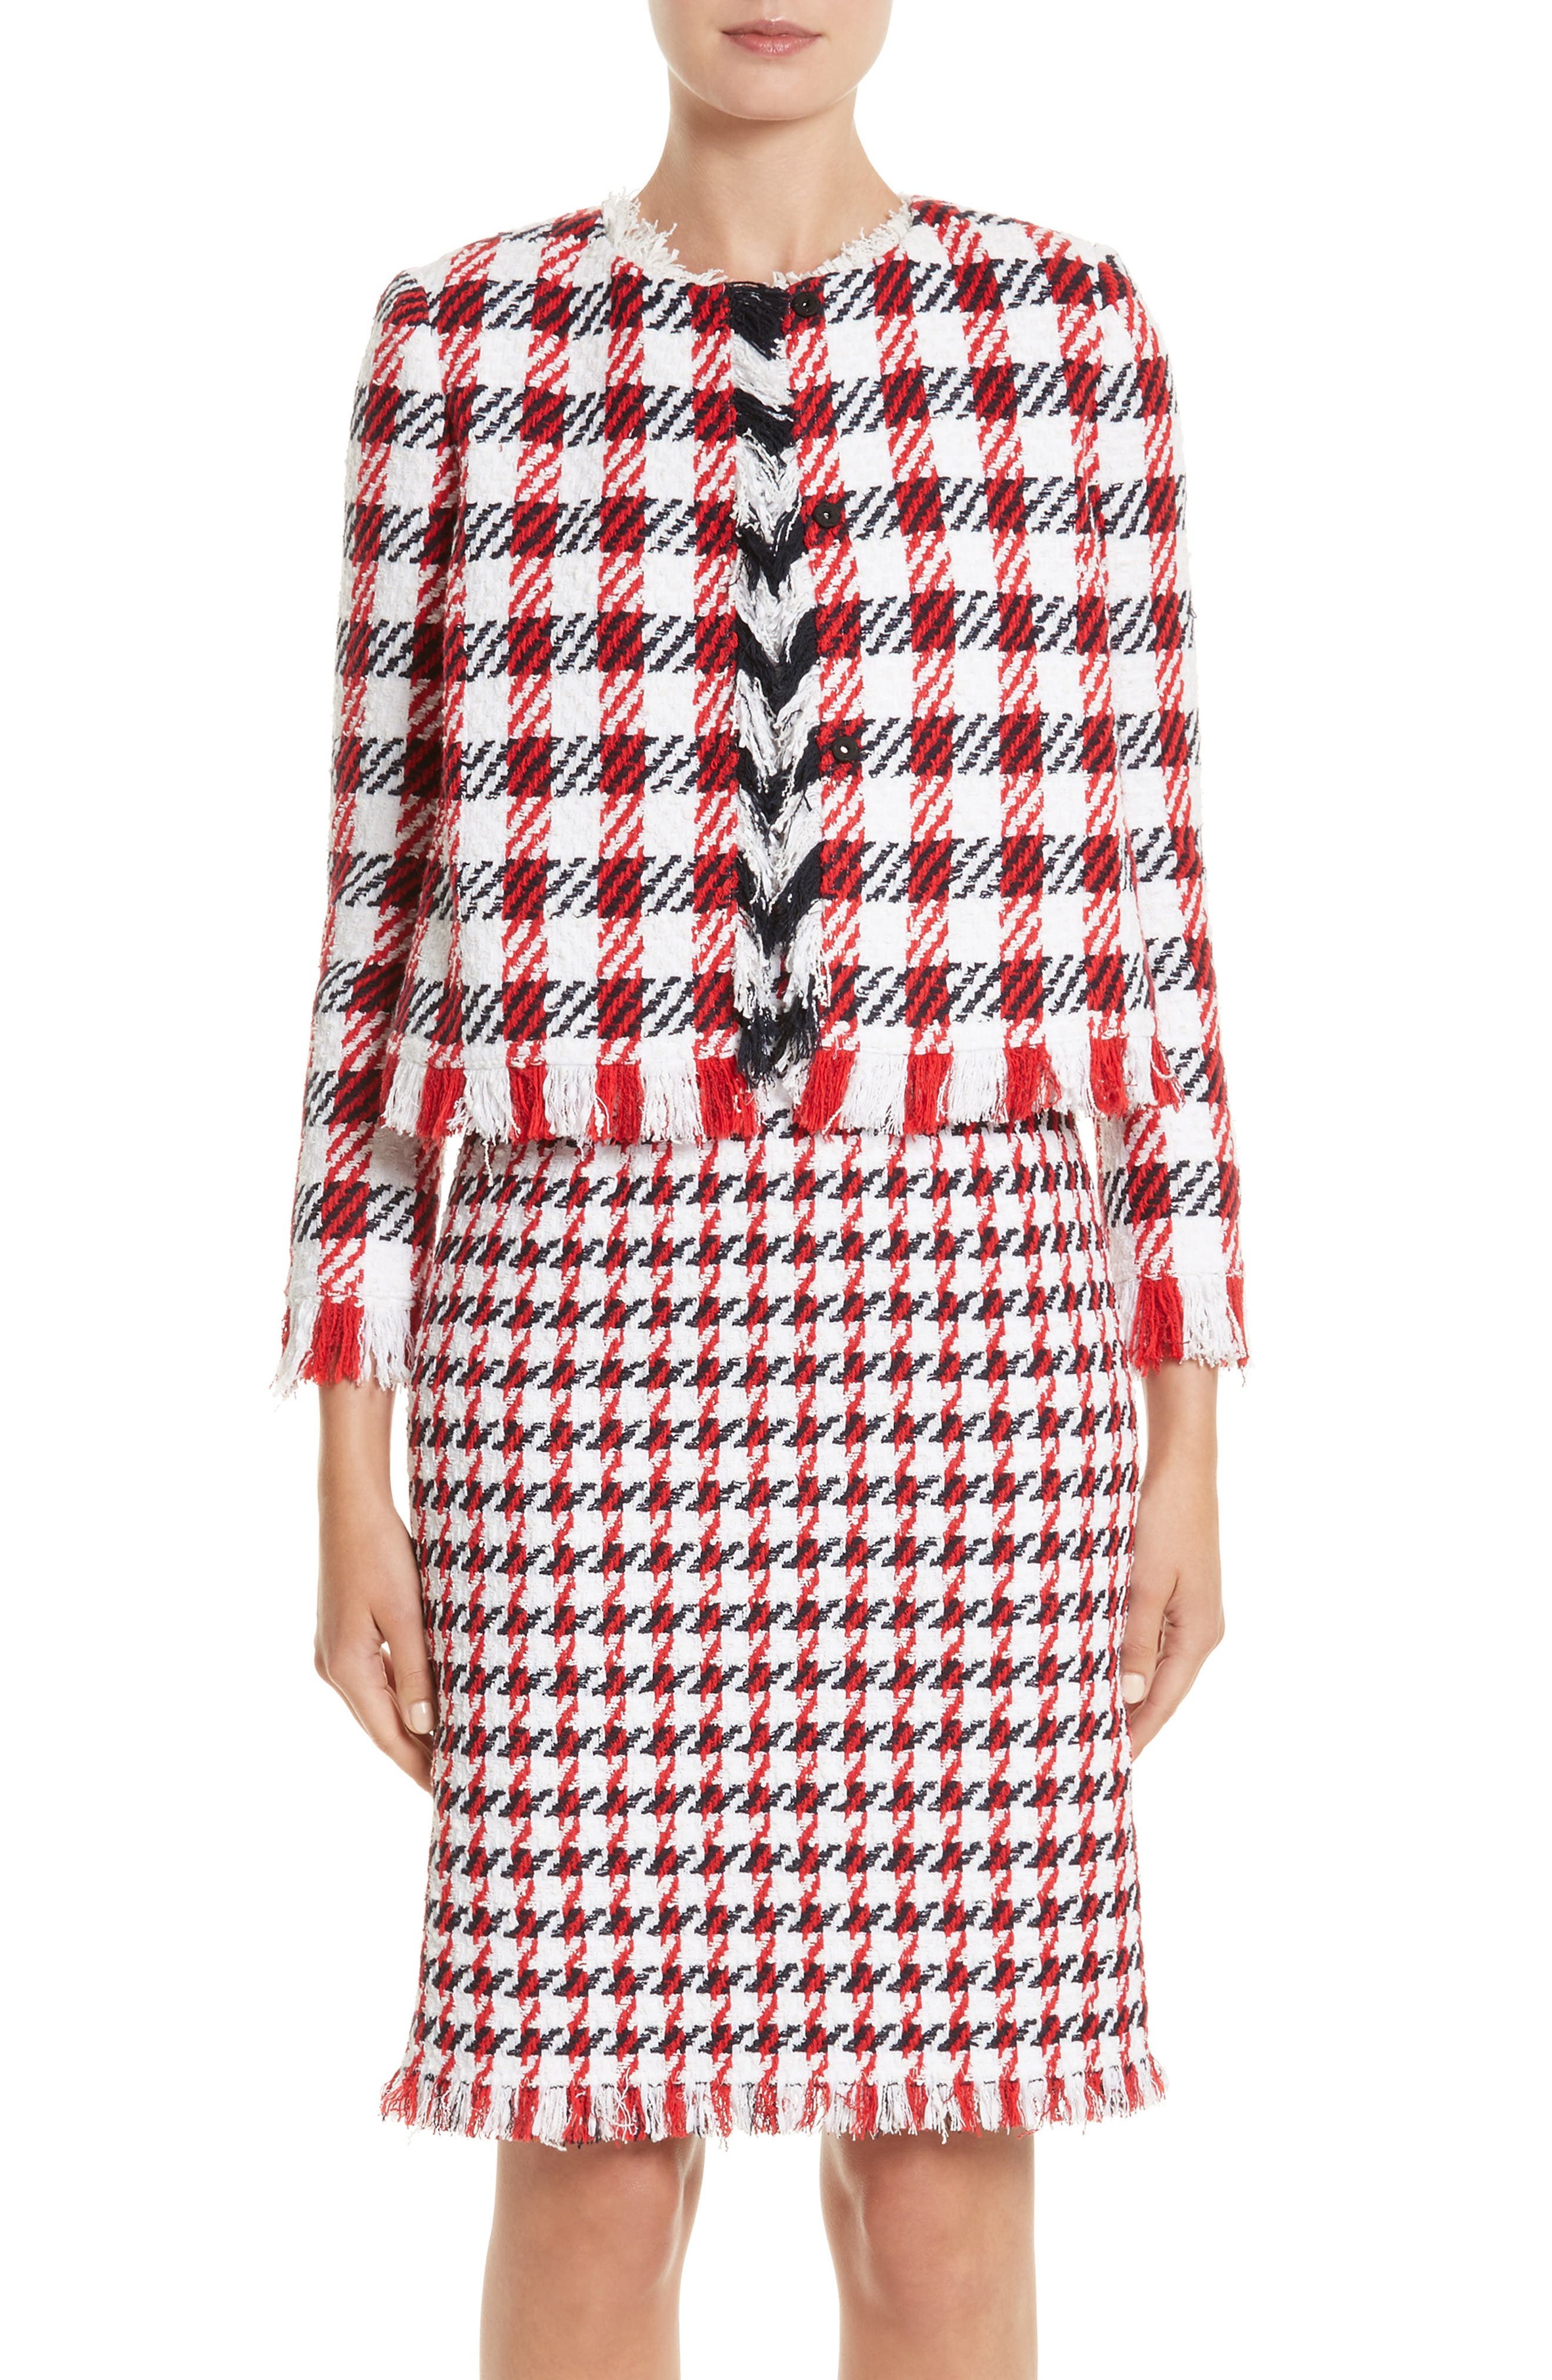 Oscar de la Renta Houndstooth Tweed Jacket